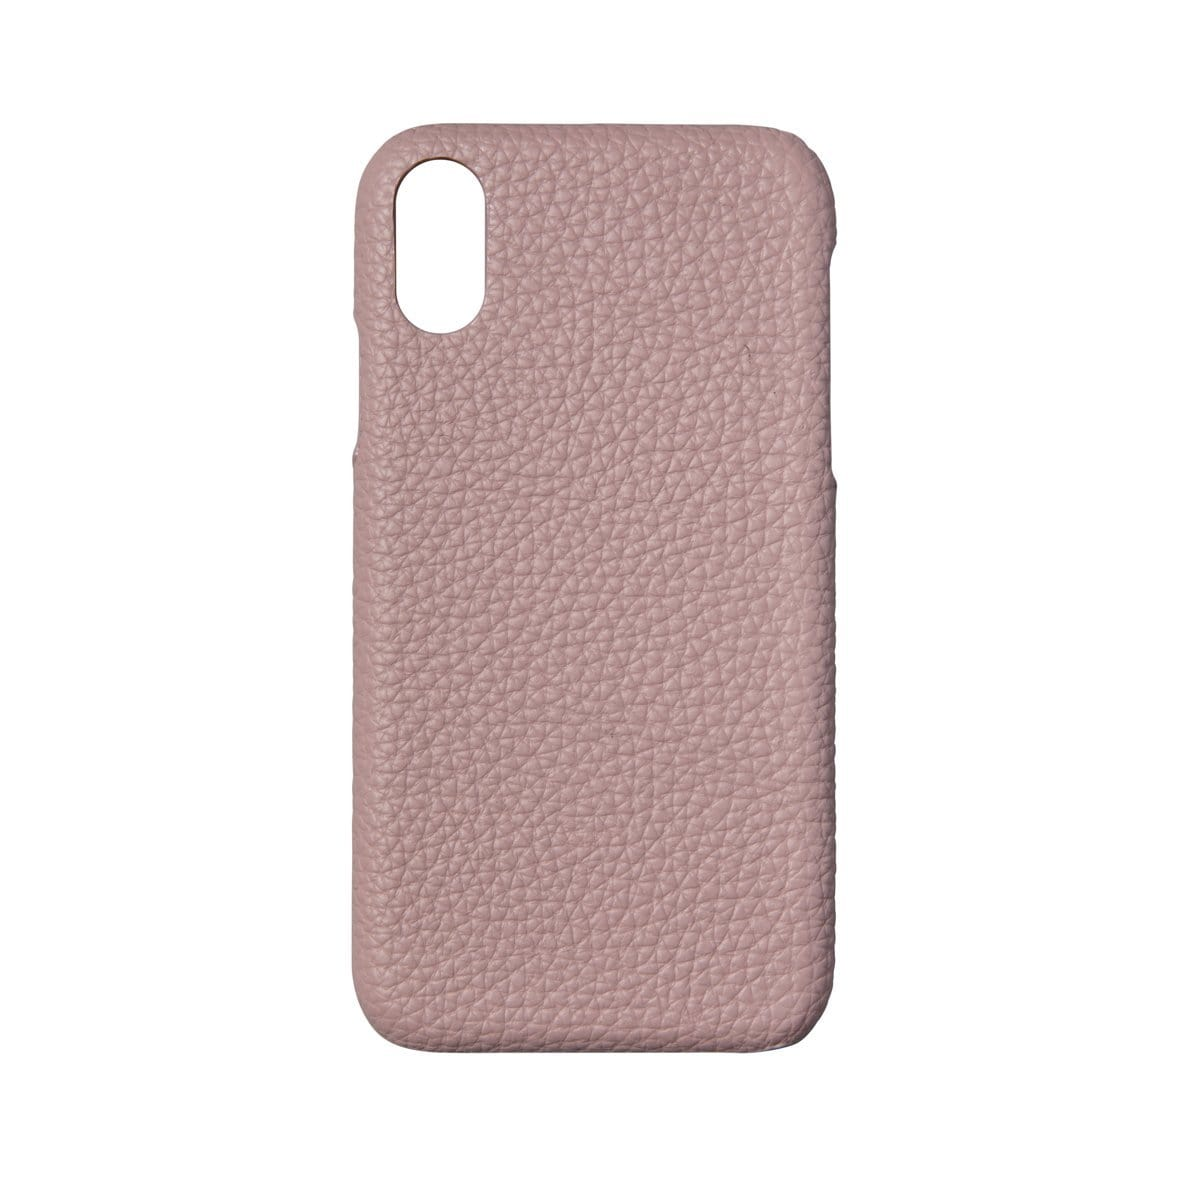 Mauve Phone Case (iPhone XR)